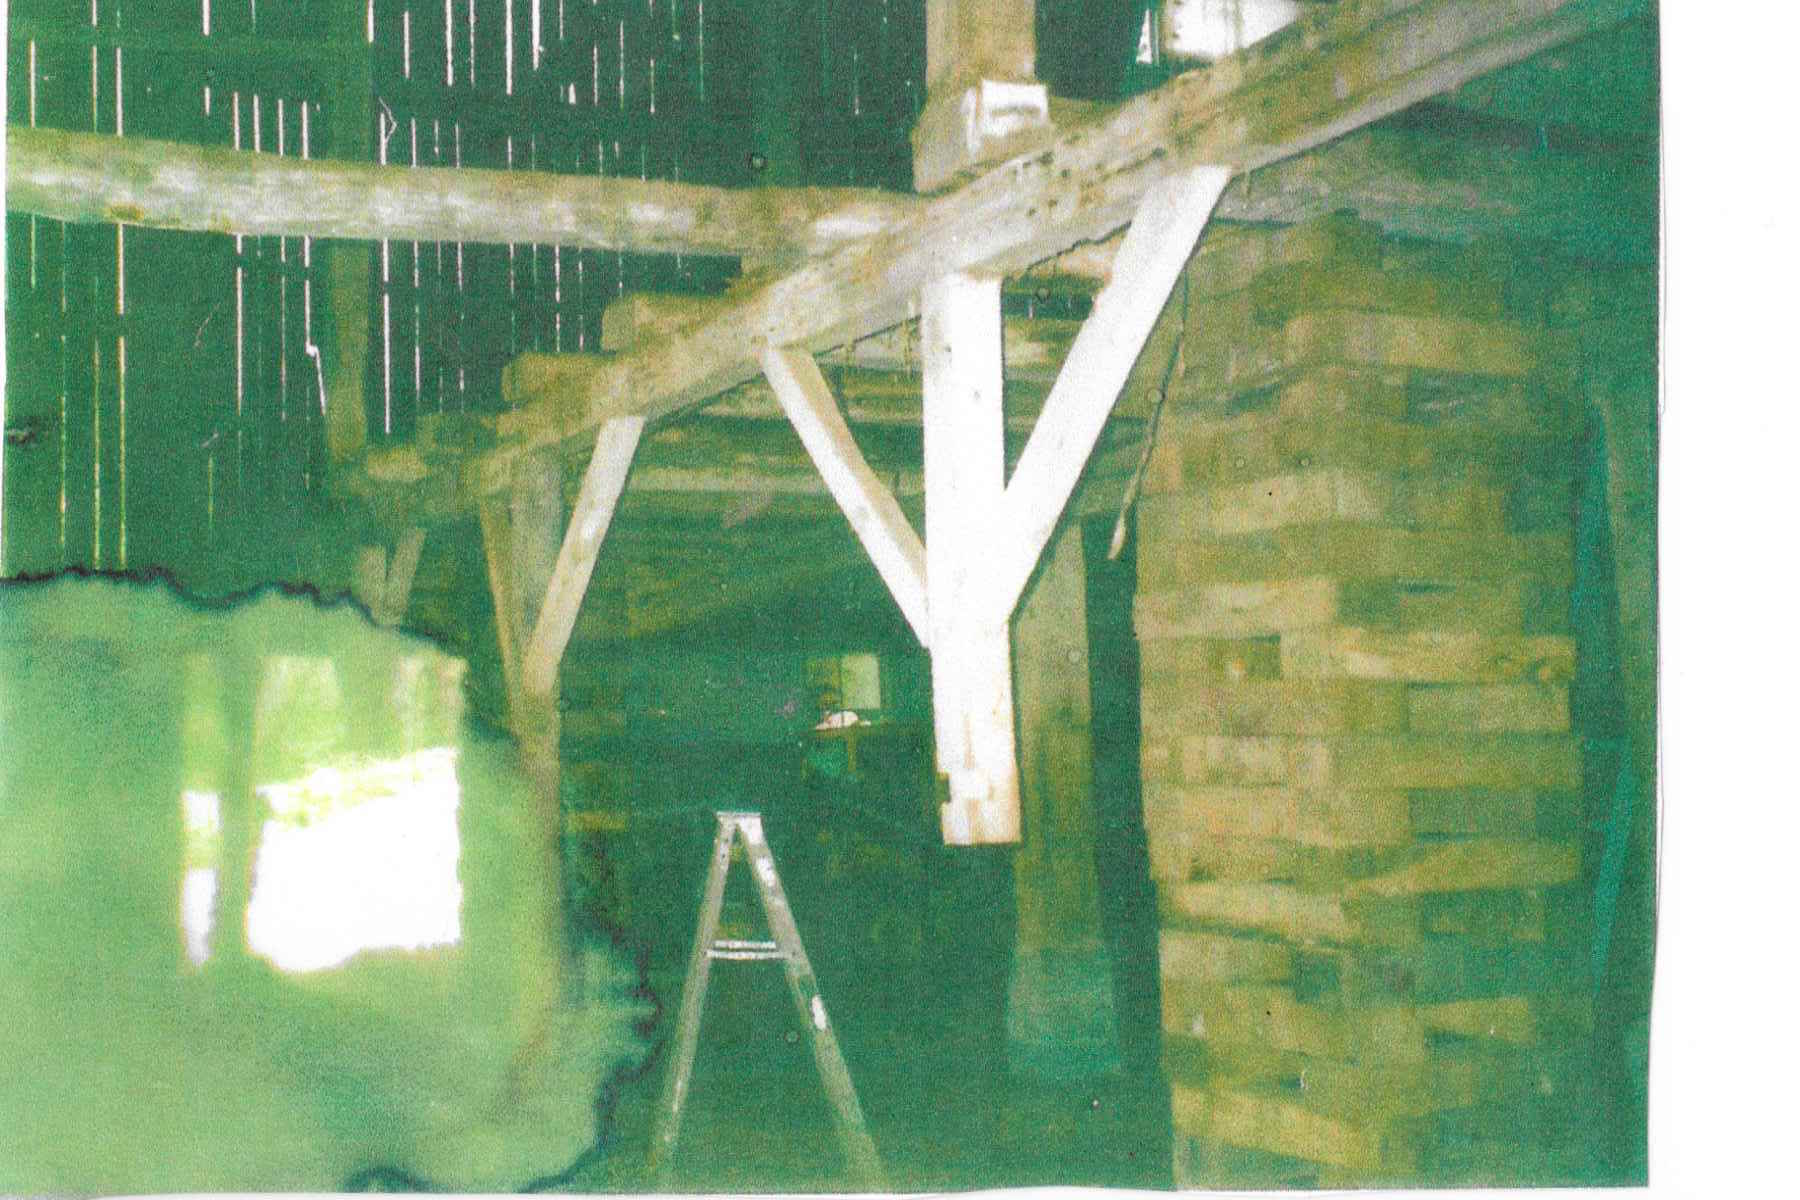 A view of both stories of the barn at Chanteclaire Farm prior to renovation